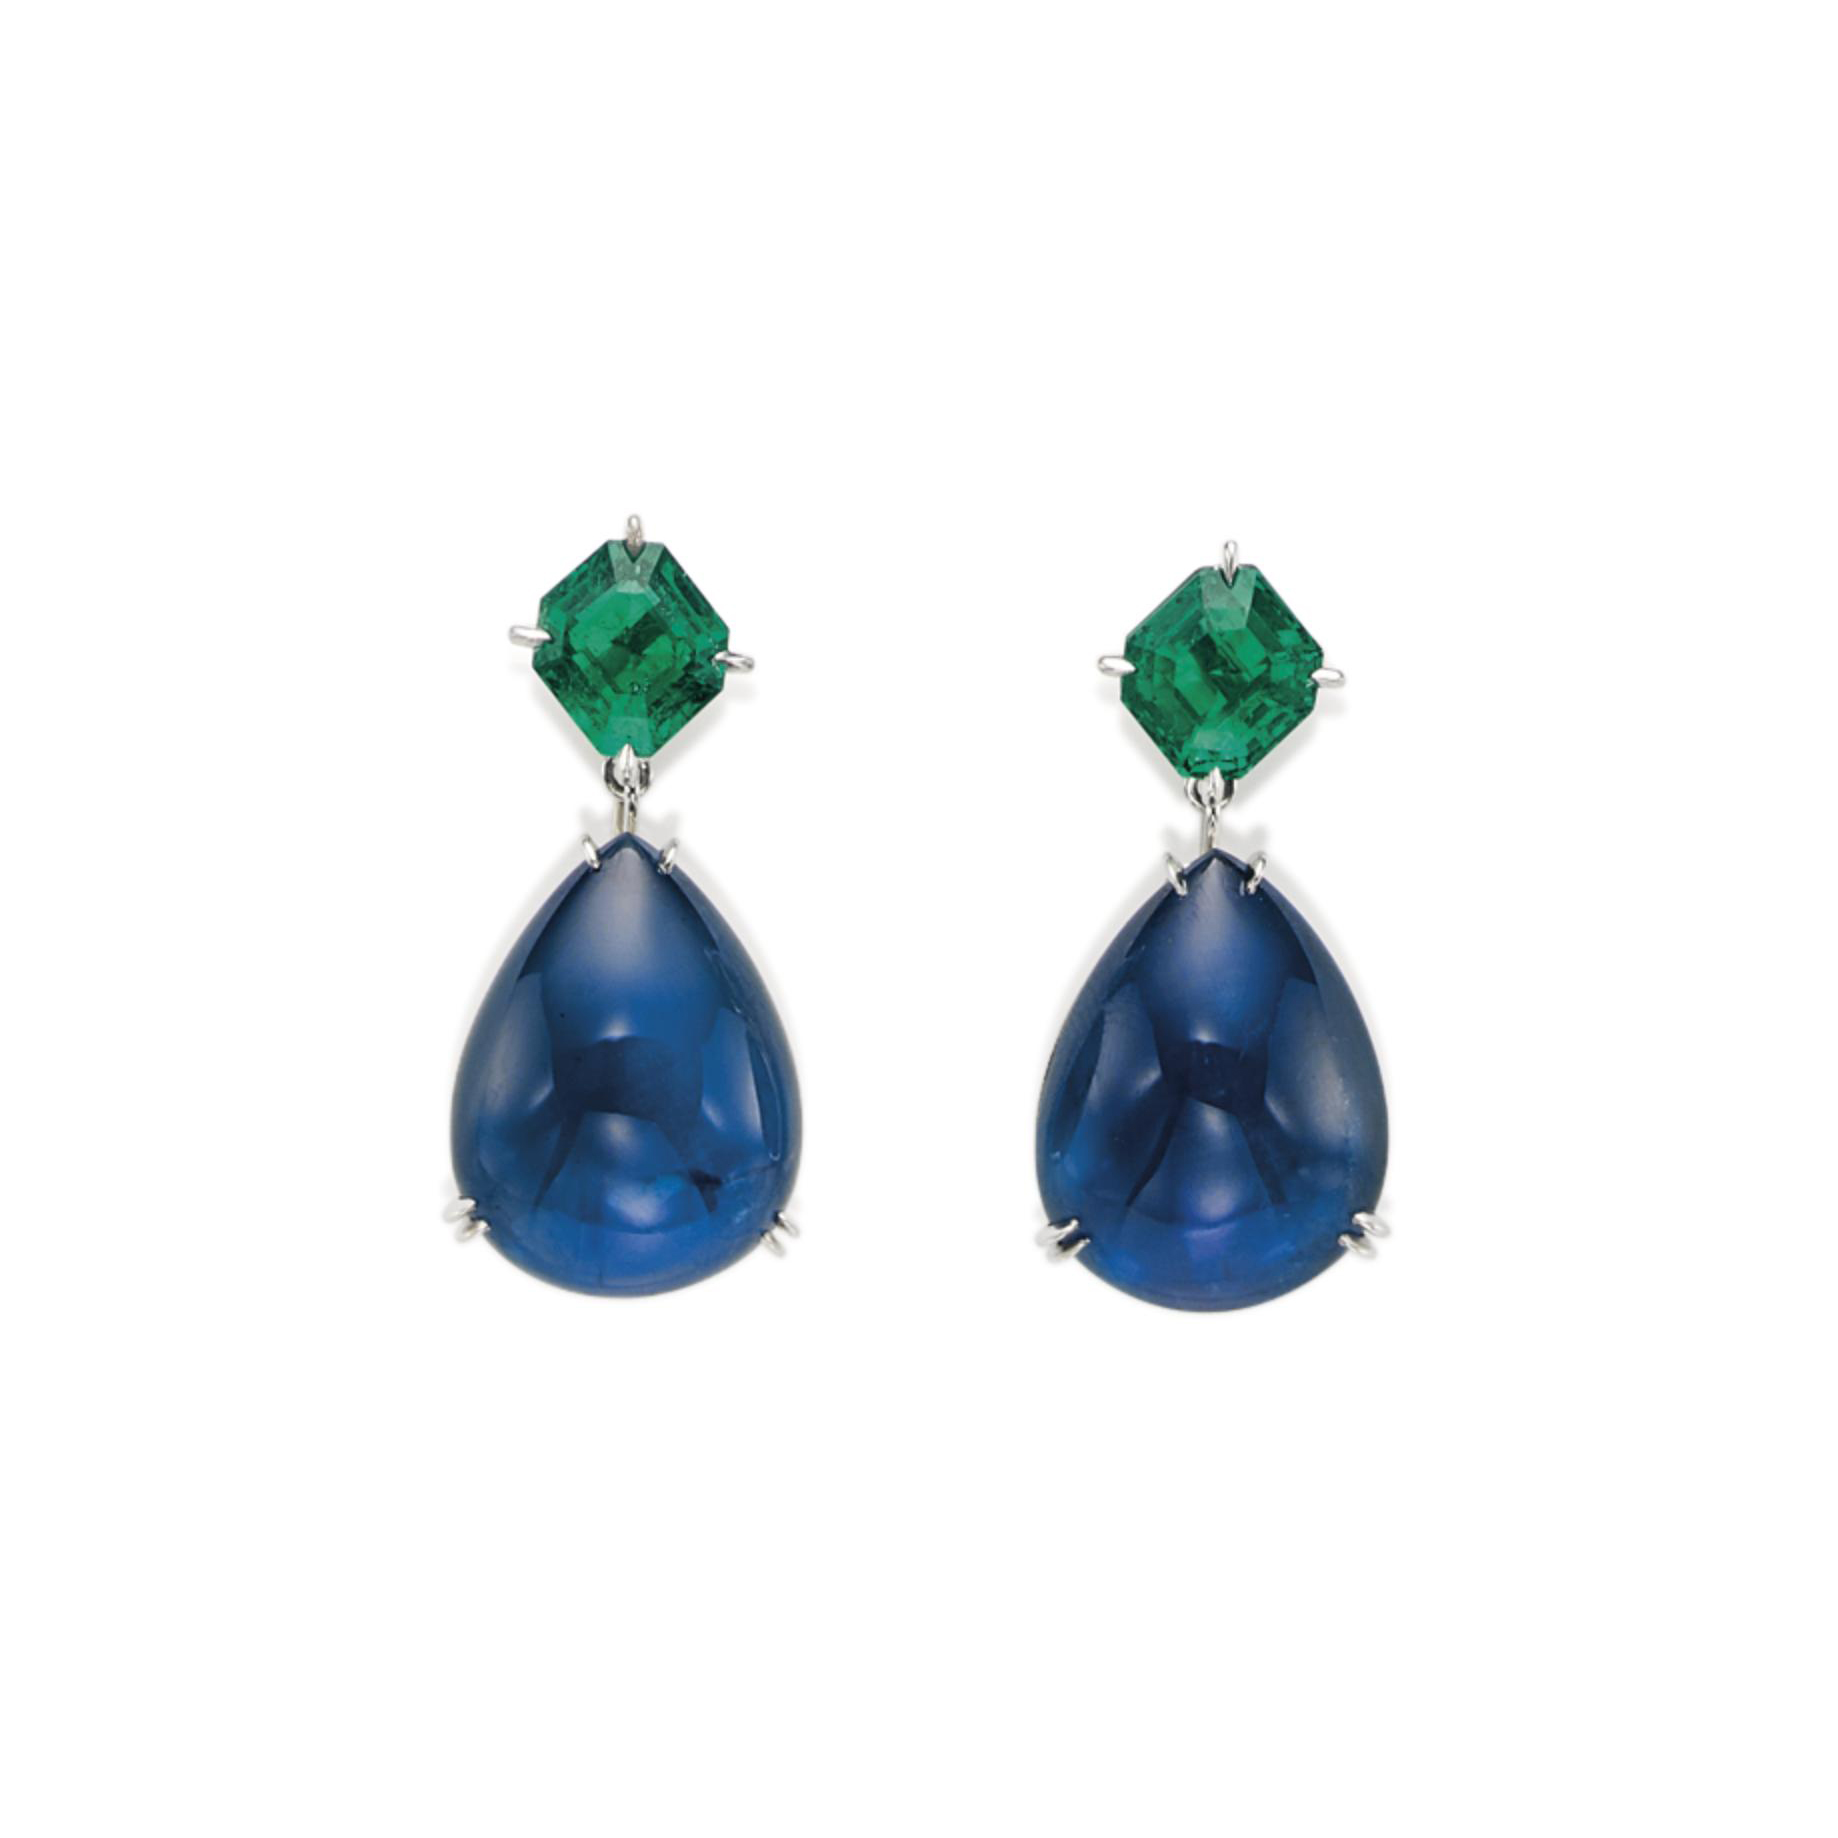 A PAIR OF SAPPHIRE AND EMERALD EARRINGS, BY MEISTER